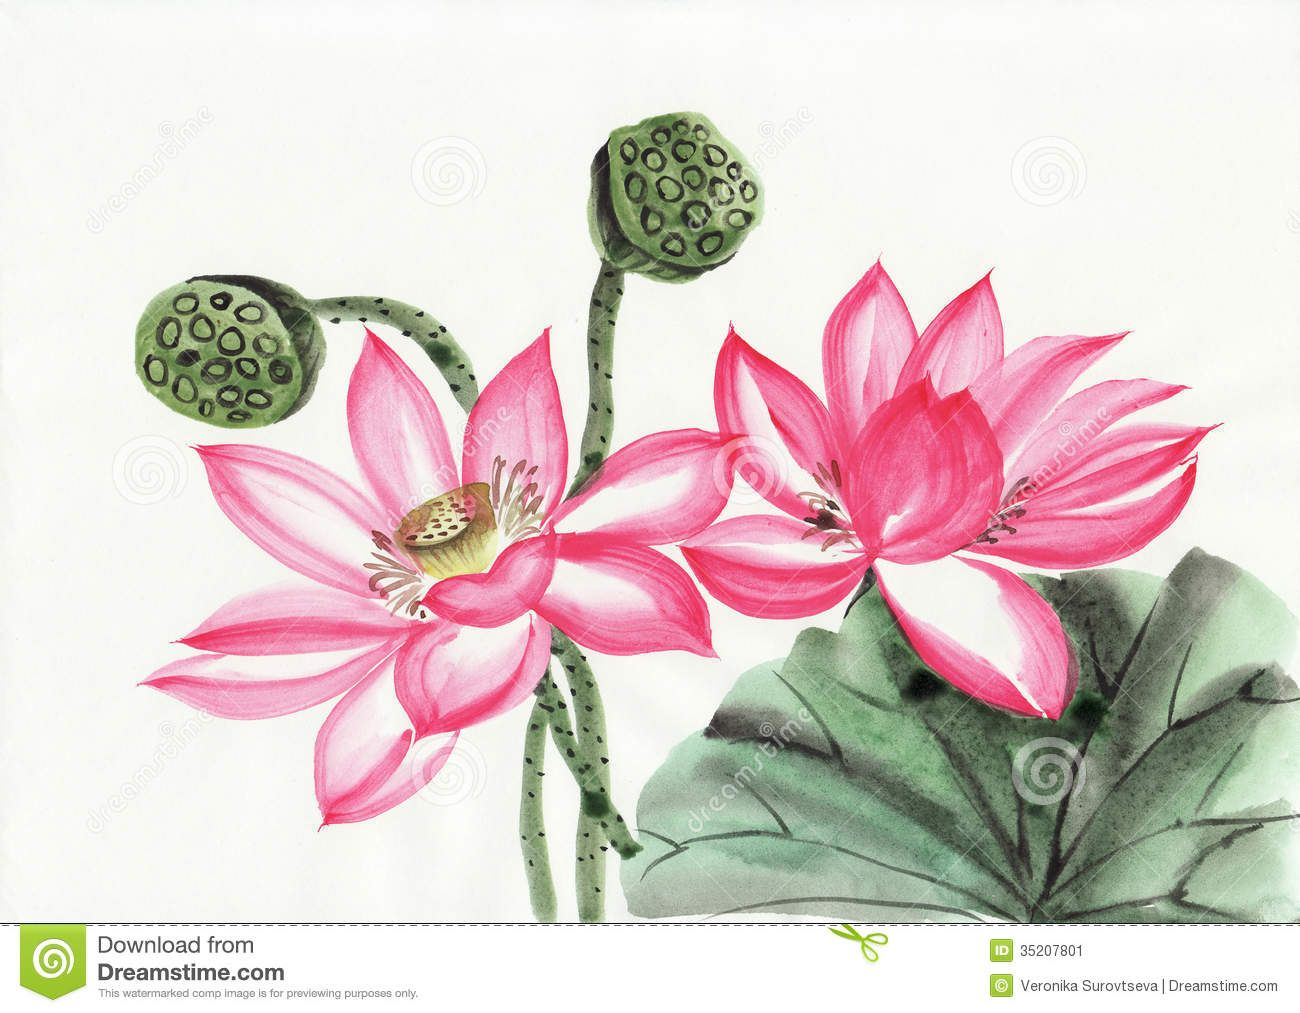 How To Paint Water Lily Leaves With Acrylics